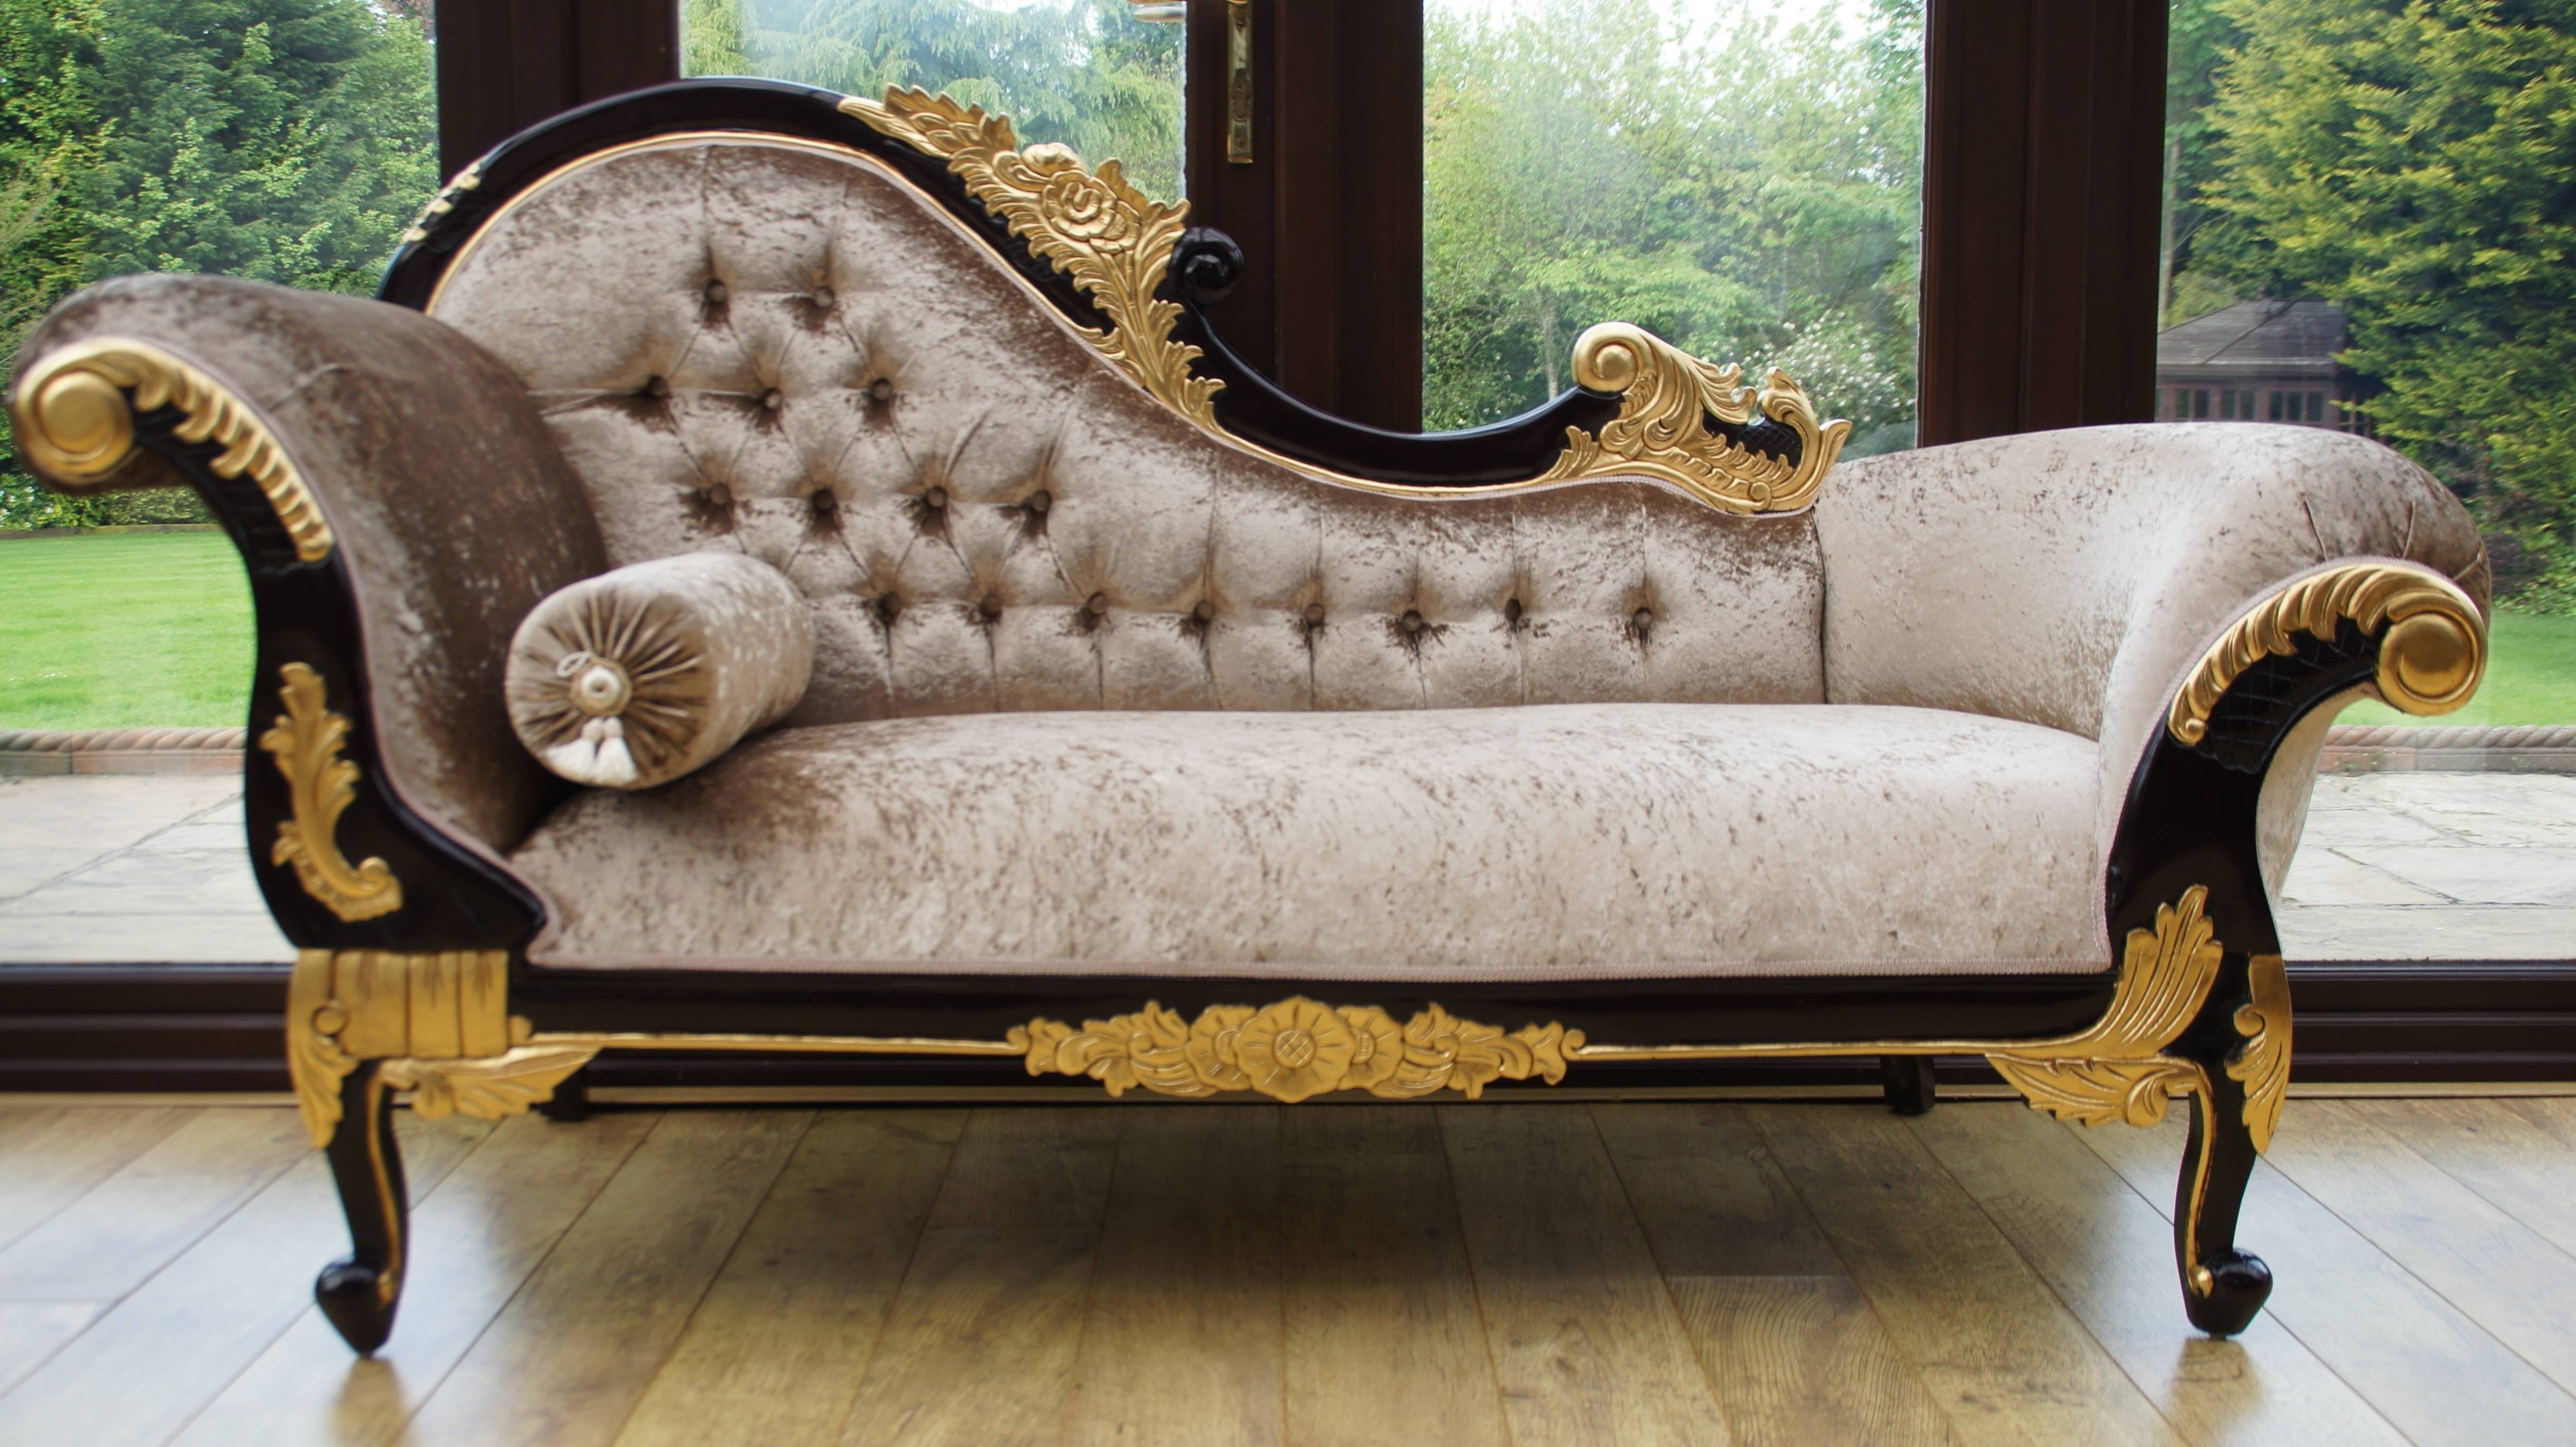 Antique Chaise Lounges With Regard To Most Recently Released Chaise Chair Beautiful Antique Furniture Black And Gold Velvet Of (View 7 of 15)